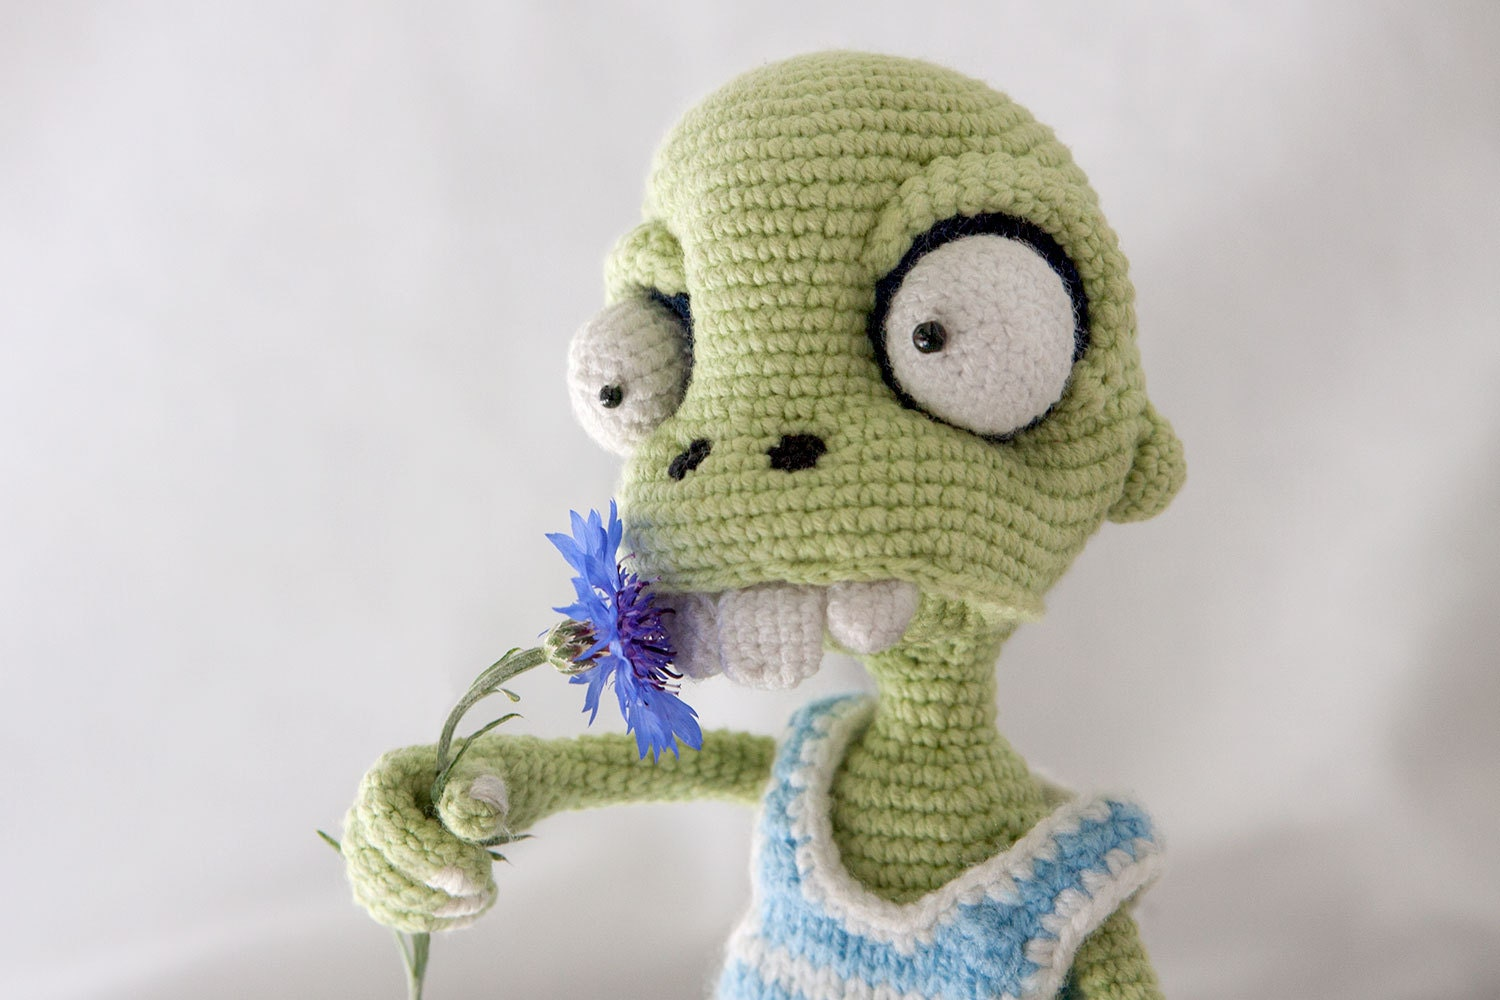 Crochet Zombie Patterns : PATTERN Zombie boy crochet pattern amigurumi by dsMouseBears